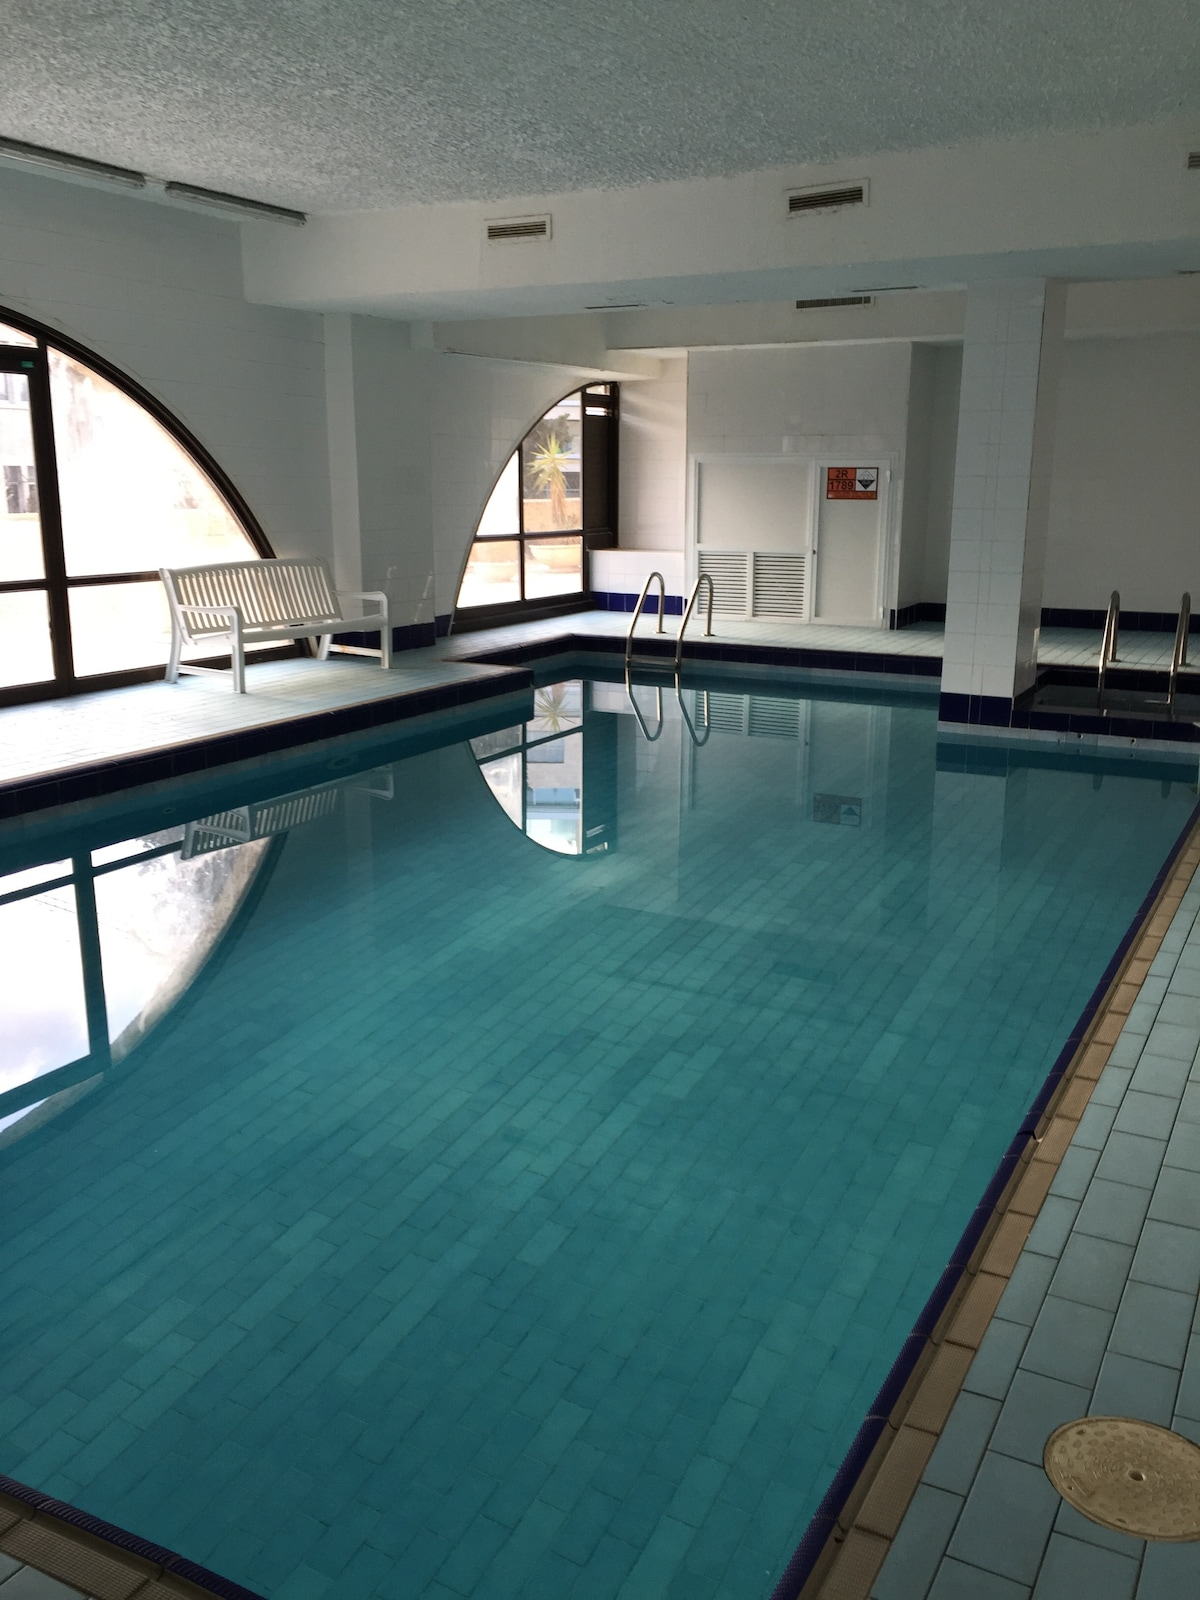 Pool, Parking, aprt#1 in the center